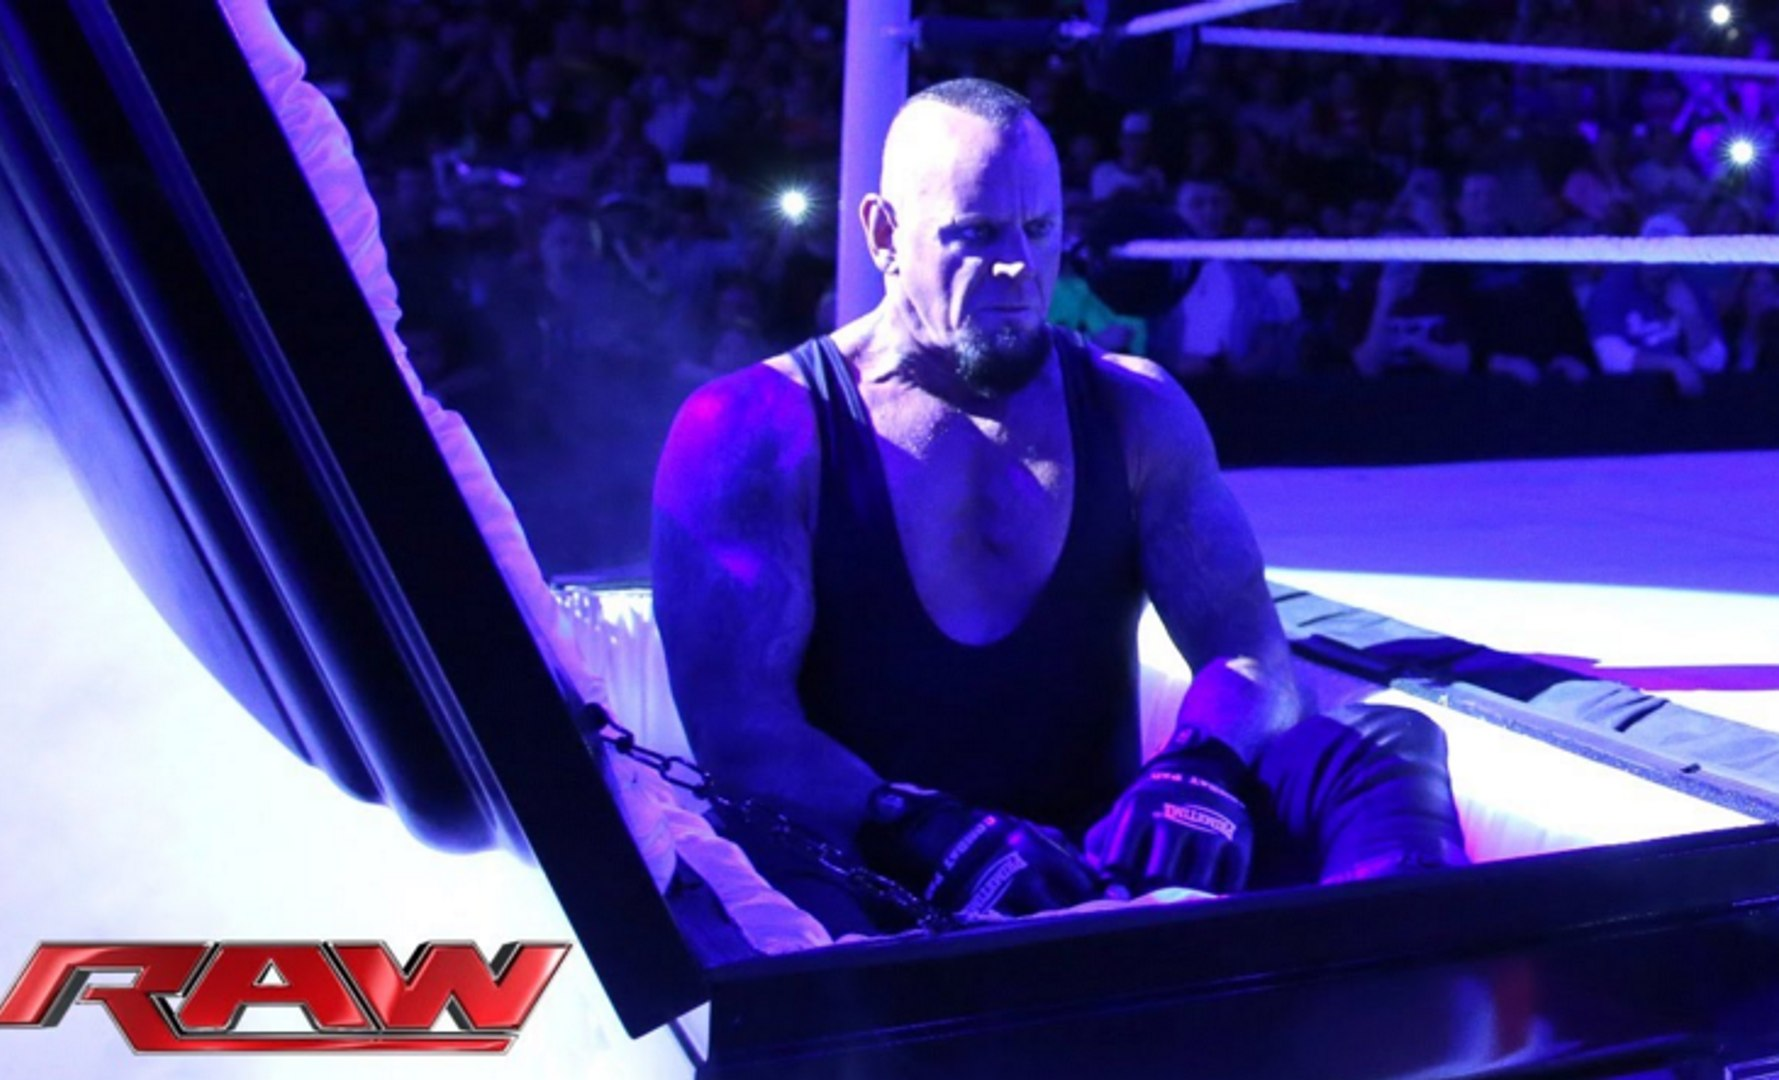 WWE RAW | The Undertaker rises from a coffin to attack Brock Lesnar | Full Video Match